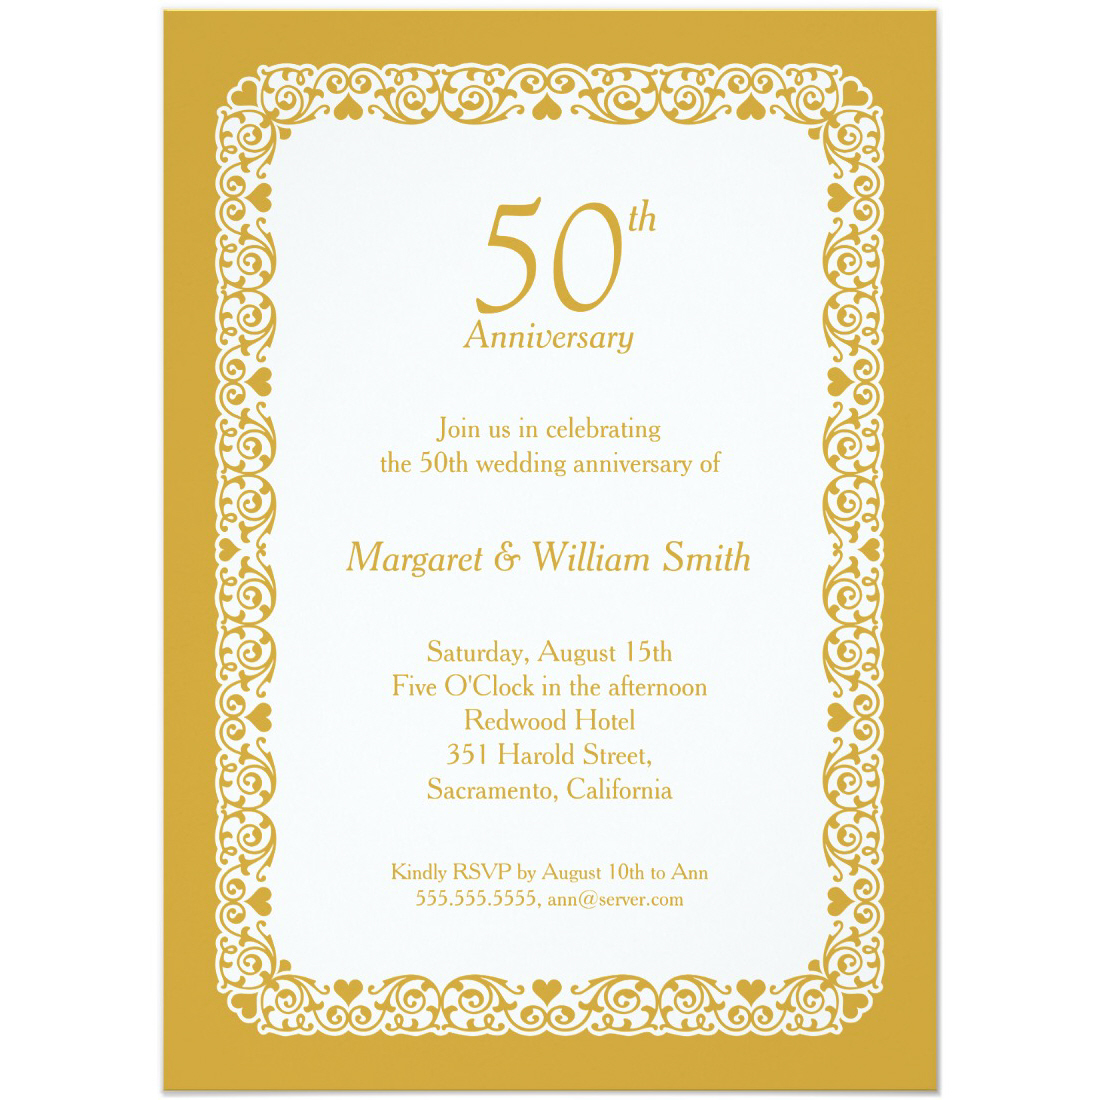 Elegant lace wedding anniversary invitation Custom Colors